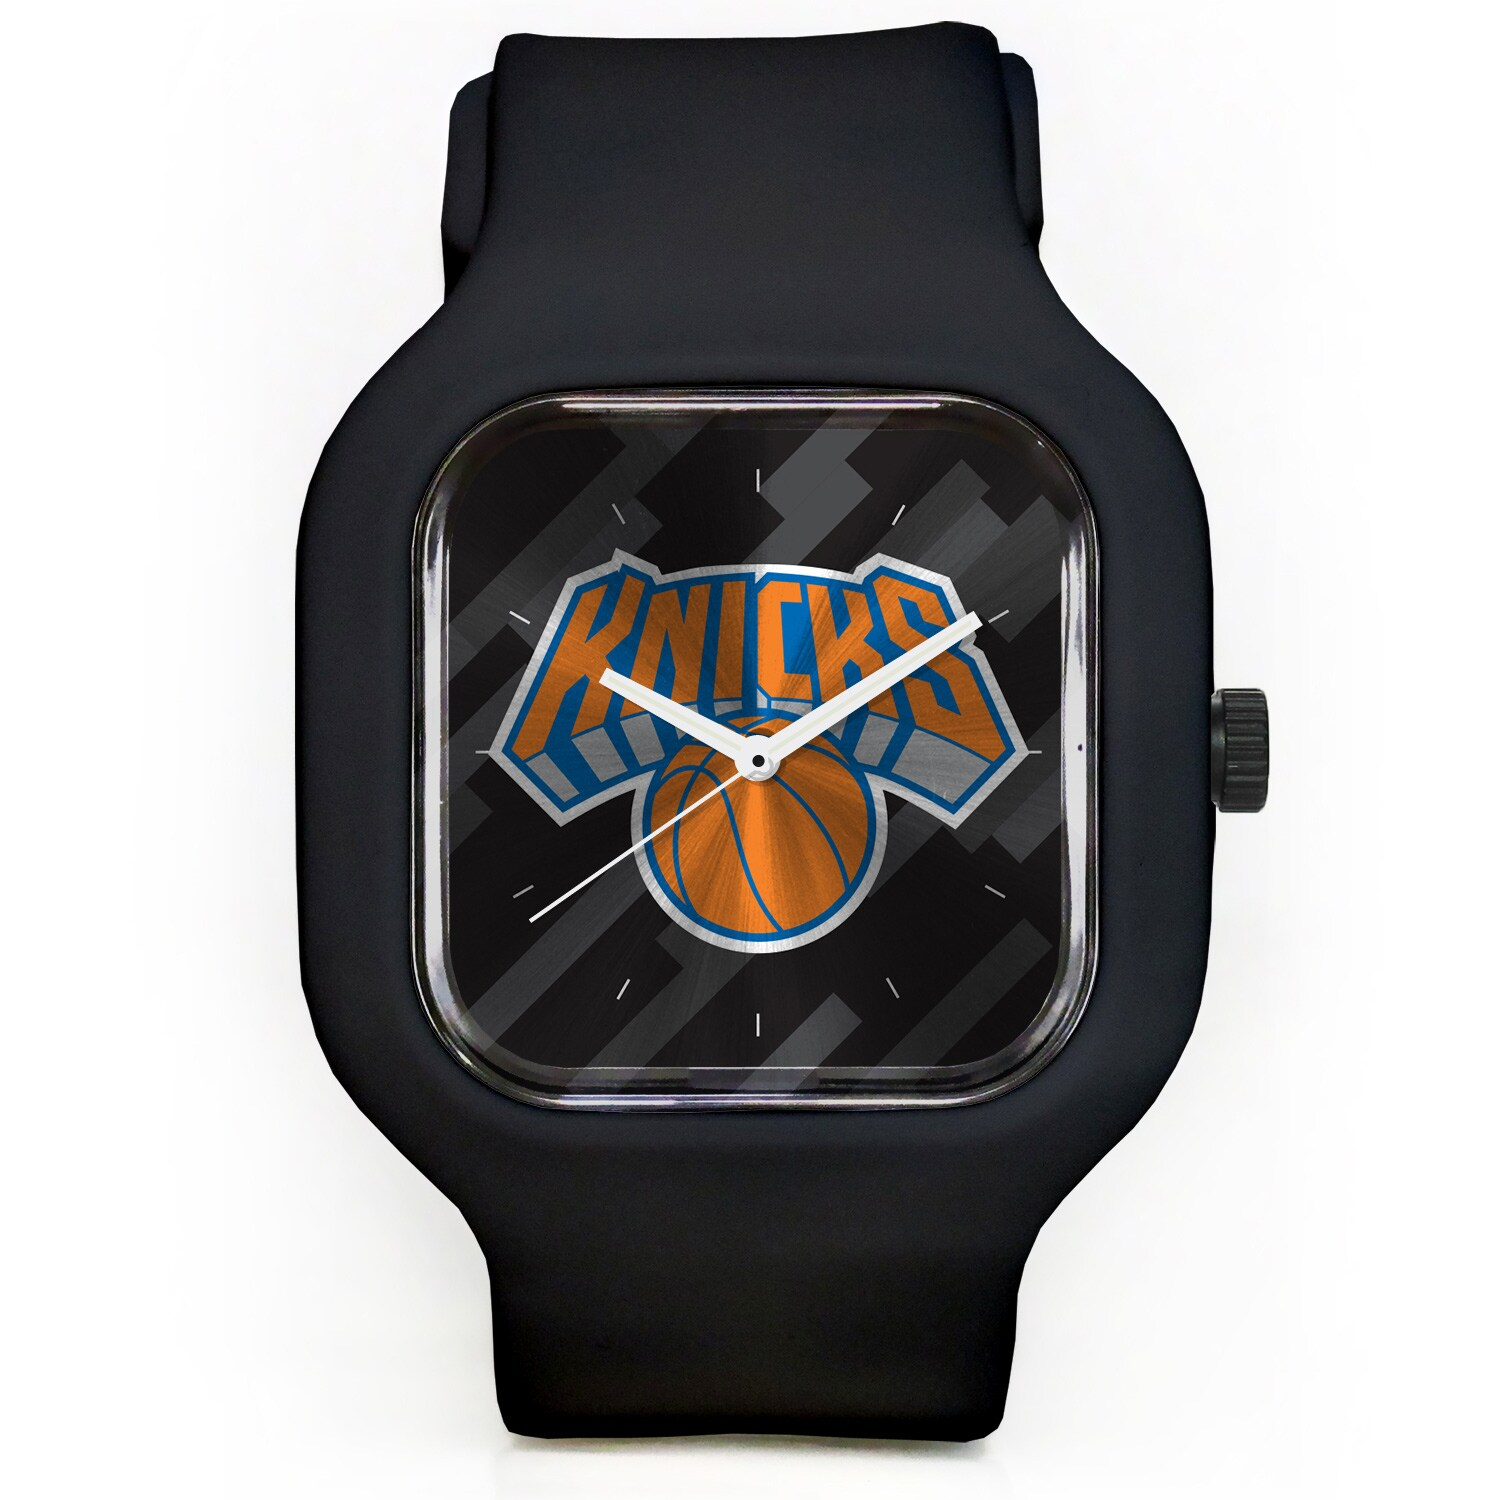 New York Knicks Modify Watches Unisex Silicone Watch - Black